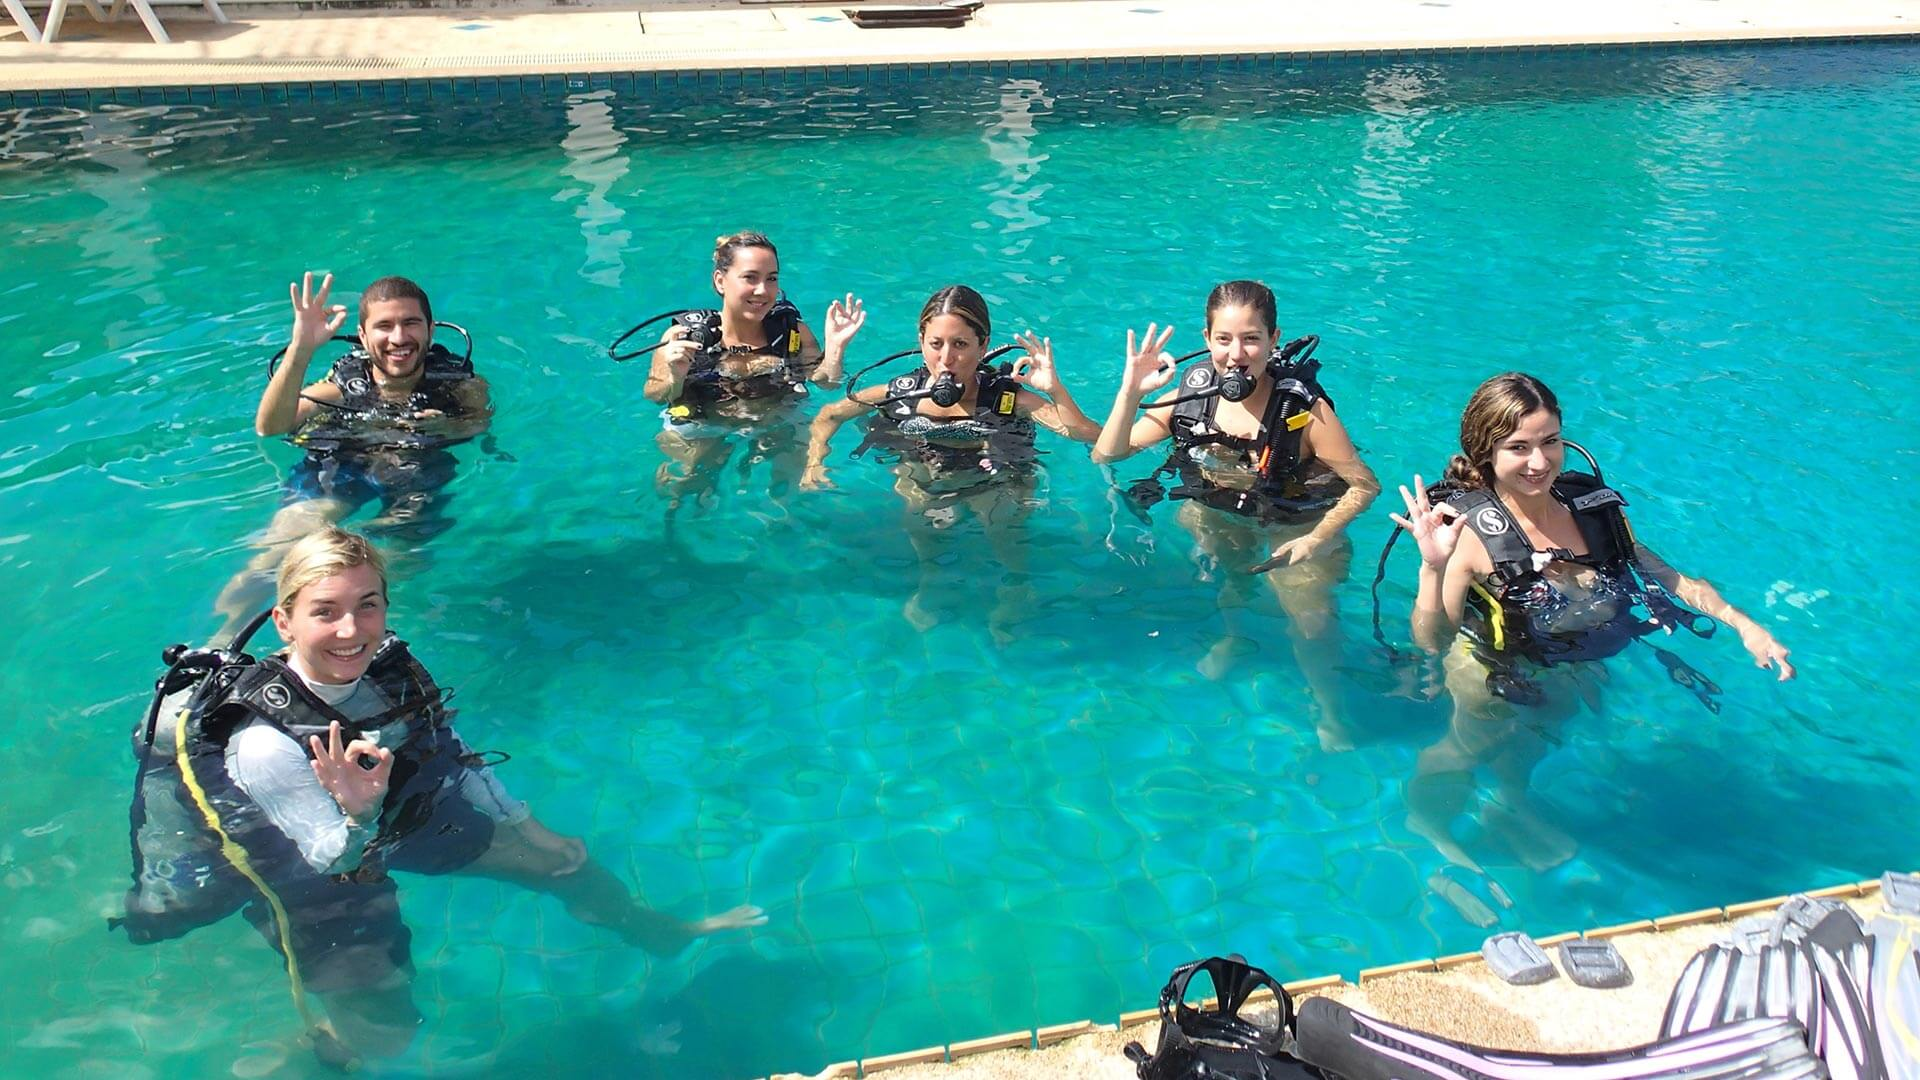 the physics of scuba diving swimming View notes - the physics of scuba diving from envi 1326 at texas pan american the physics of scuba diving swimming with the fish have you ever pondered what it.